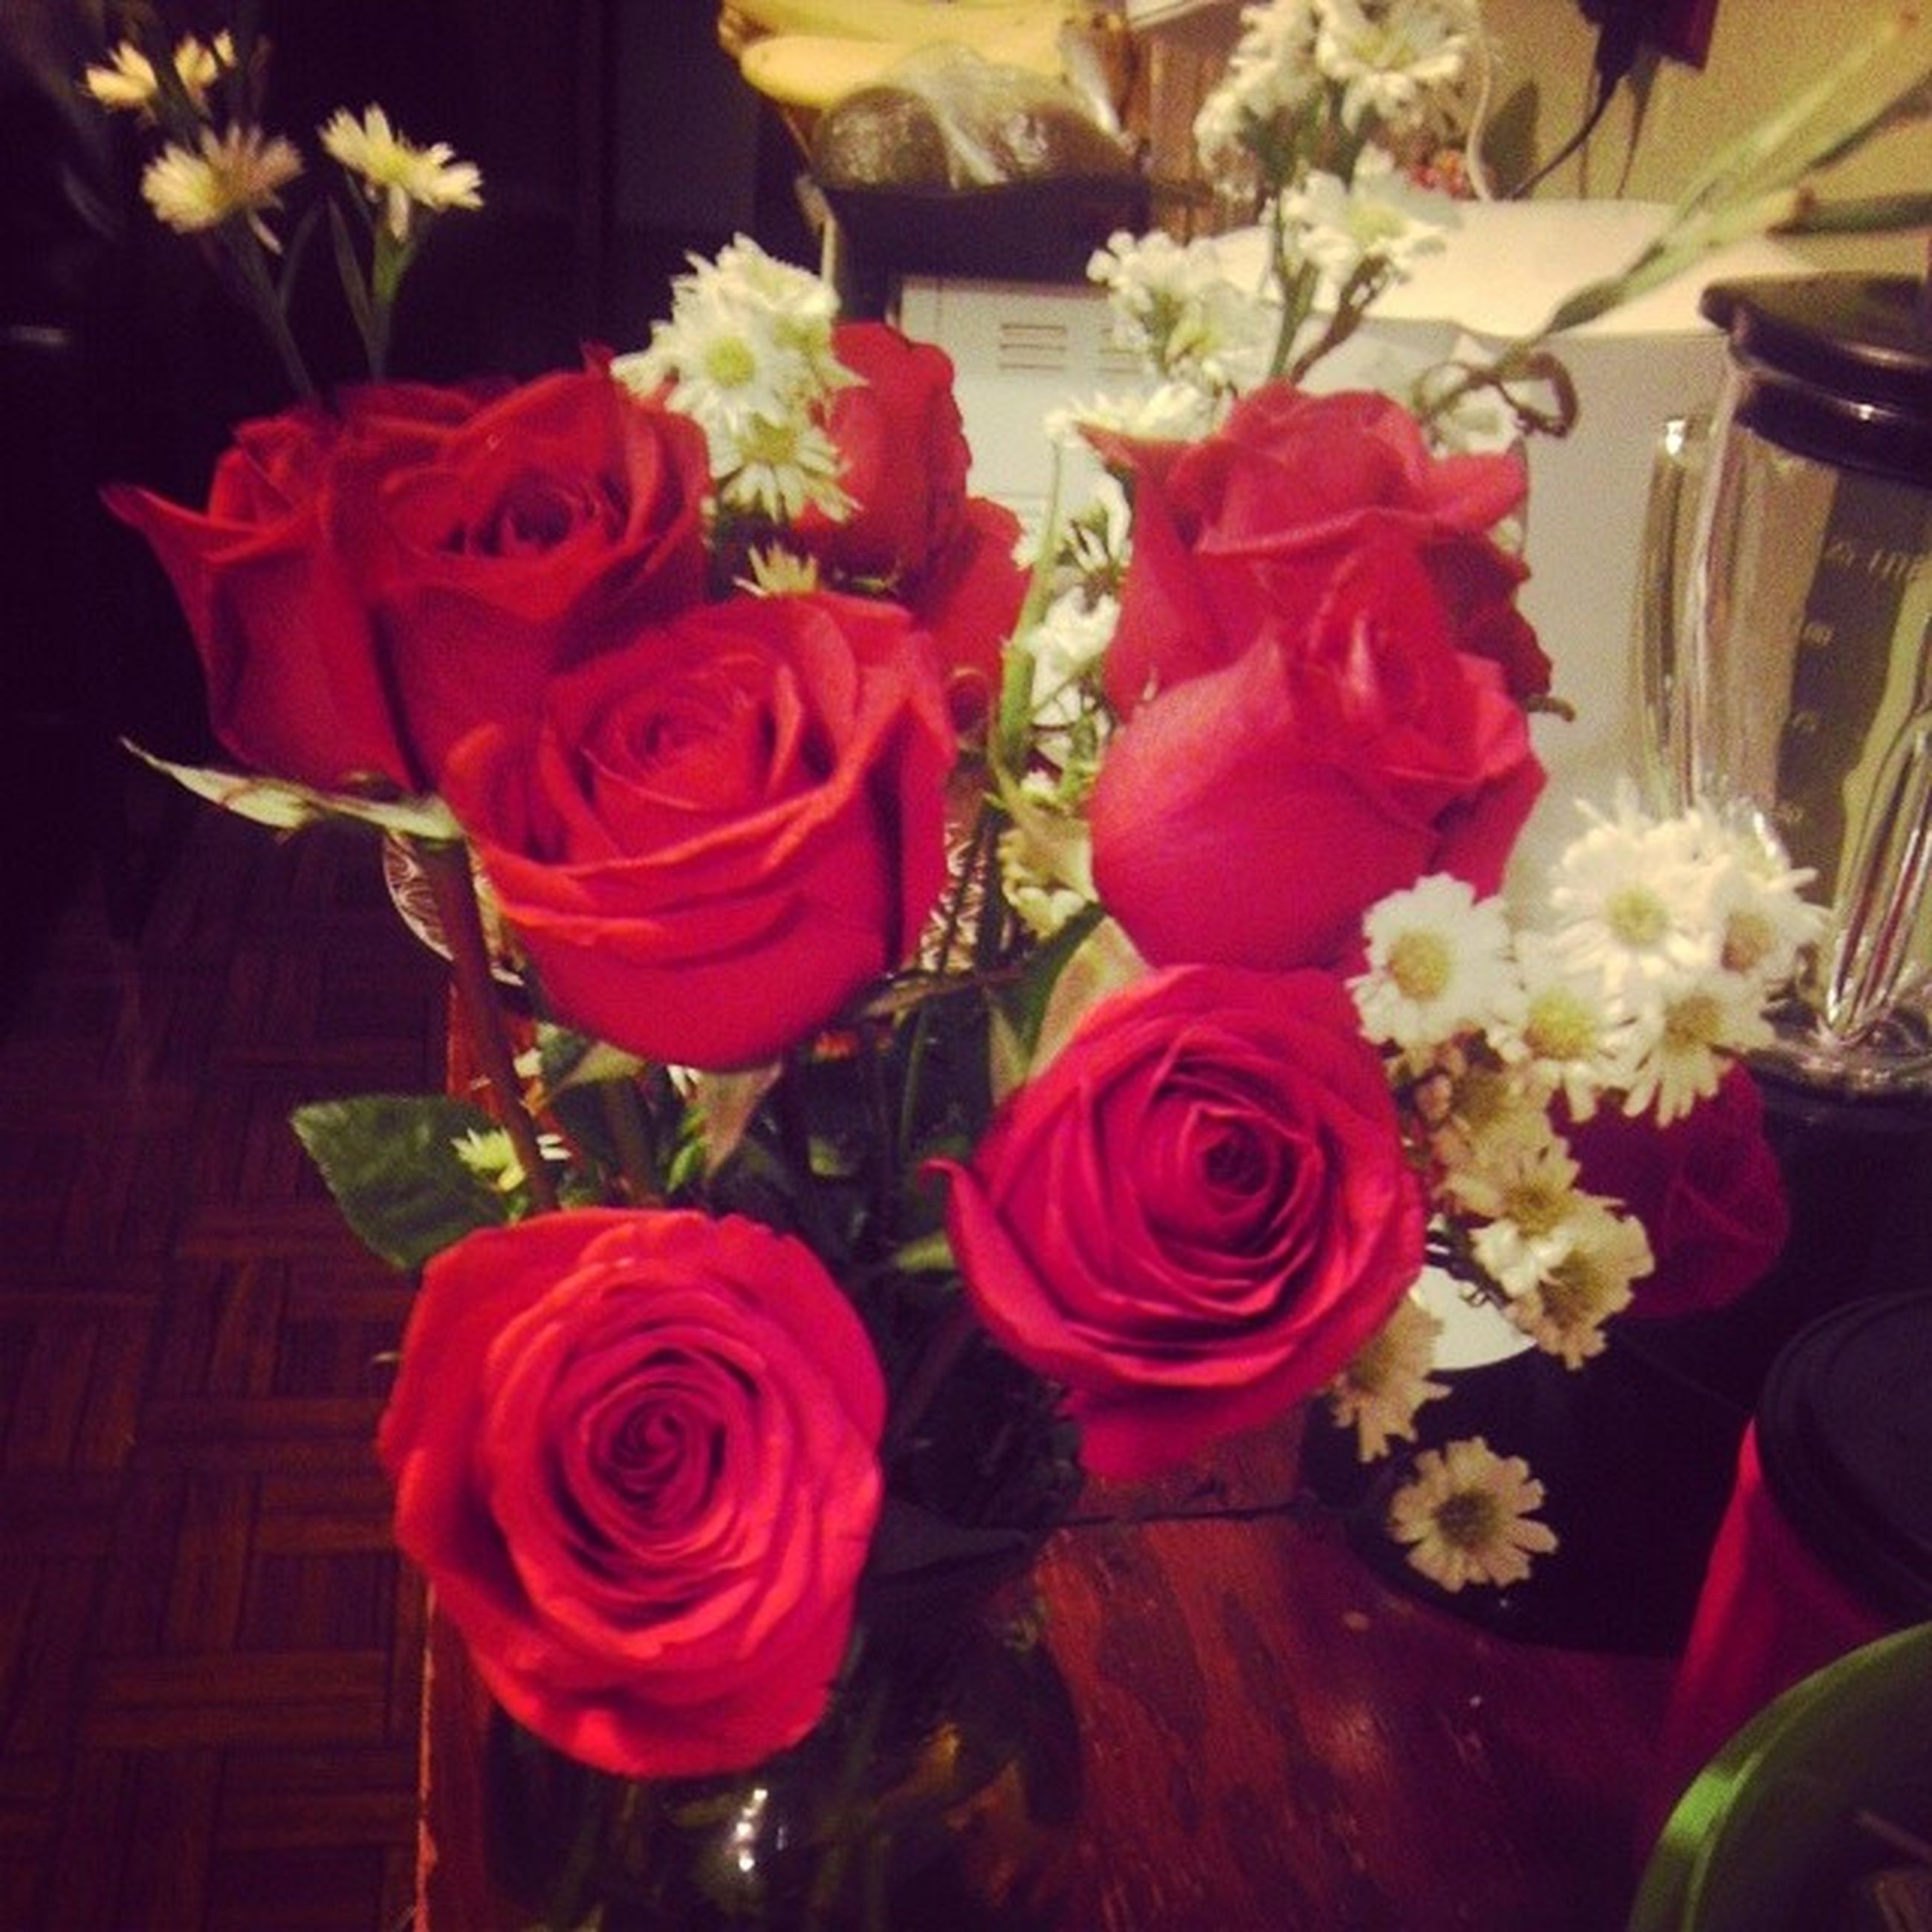 flower, rose - flower, indoors, petal, freshness, flower head, fragility, vase, bouquet, flower arrangement, rose, beauty in nature, bunch of flowers, table, pink color, close-up, decoration, red, high angle view, multi colored